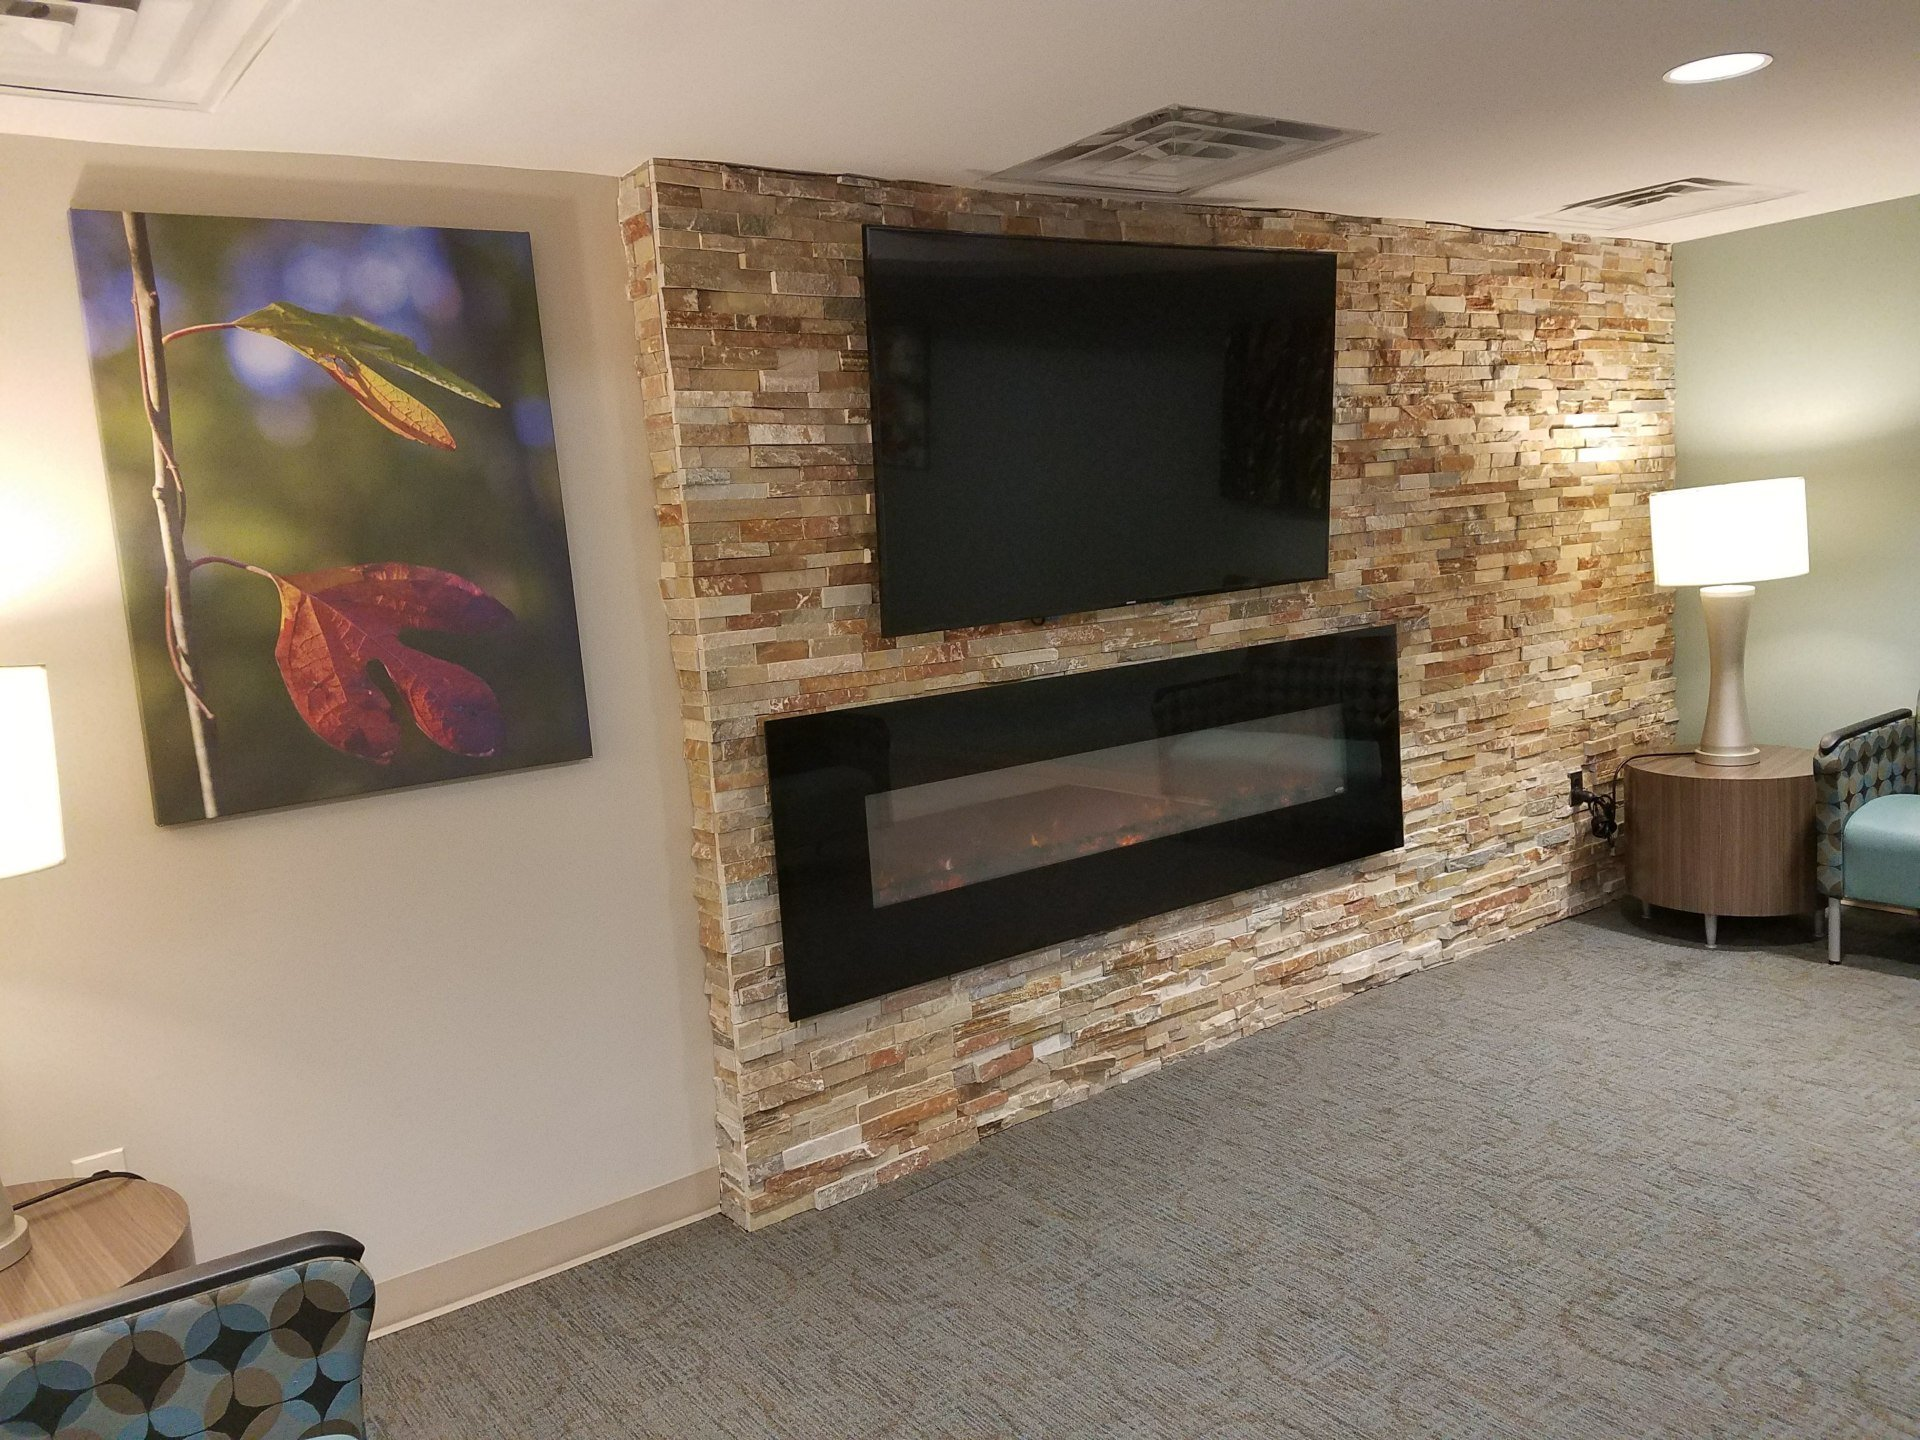 Fireplace Tv Mount Tv Mounting Above Fireplace Professional Service Provider